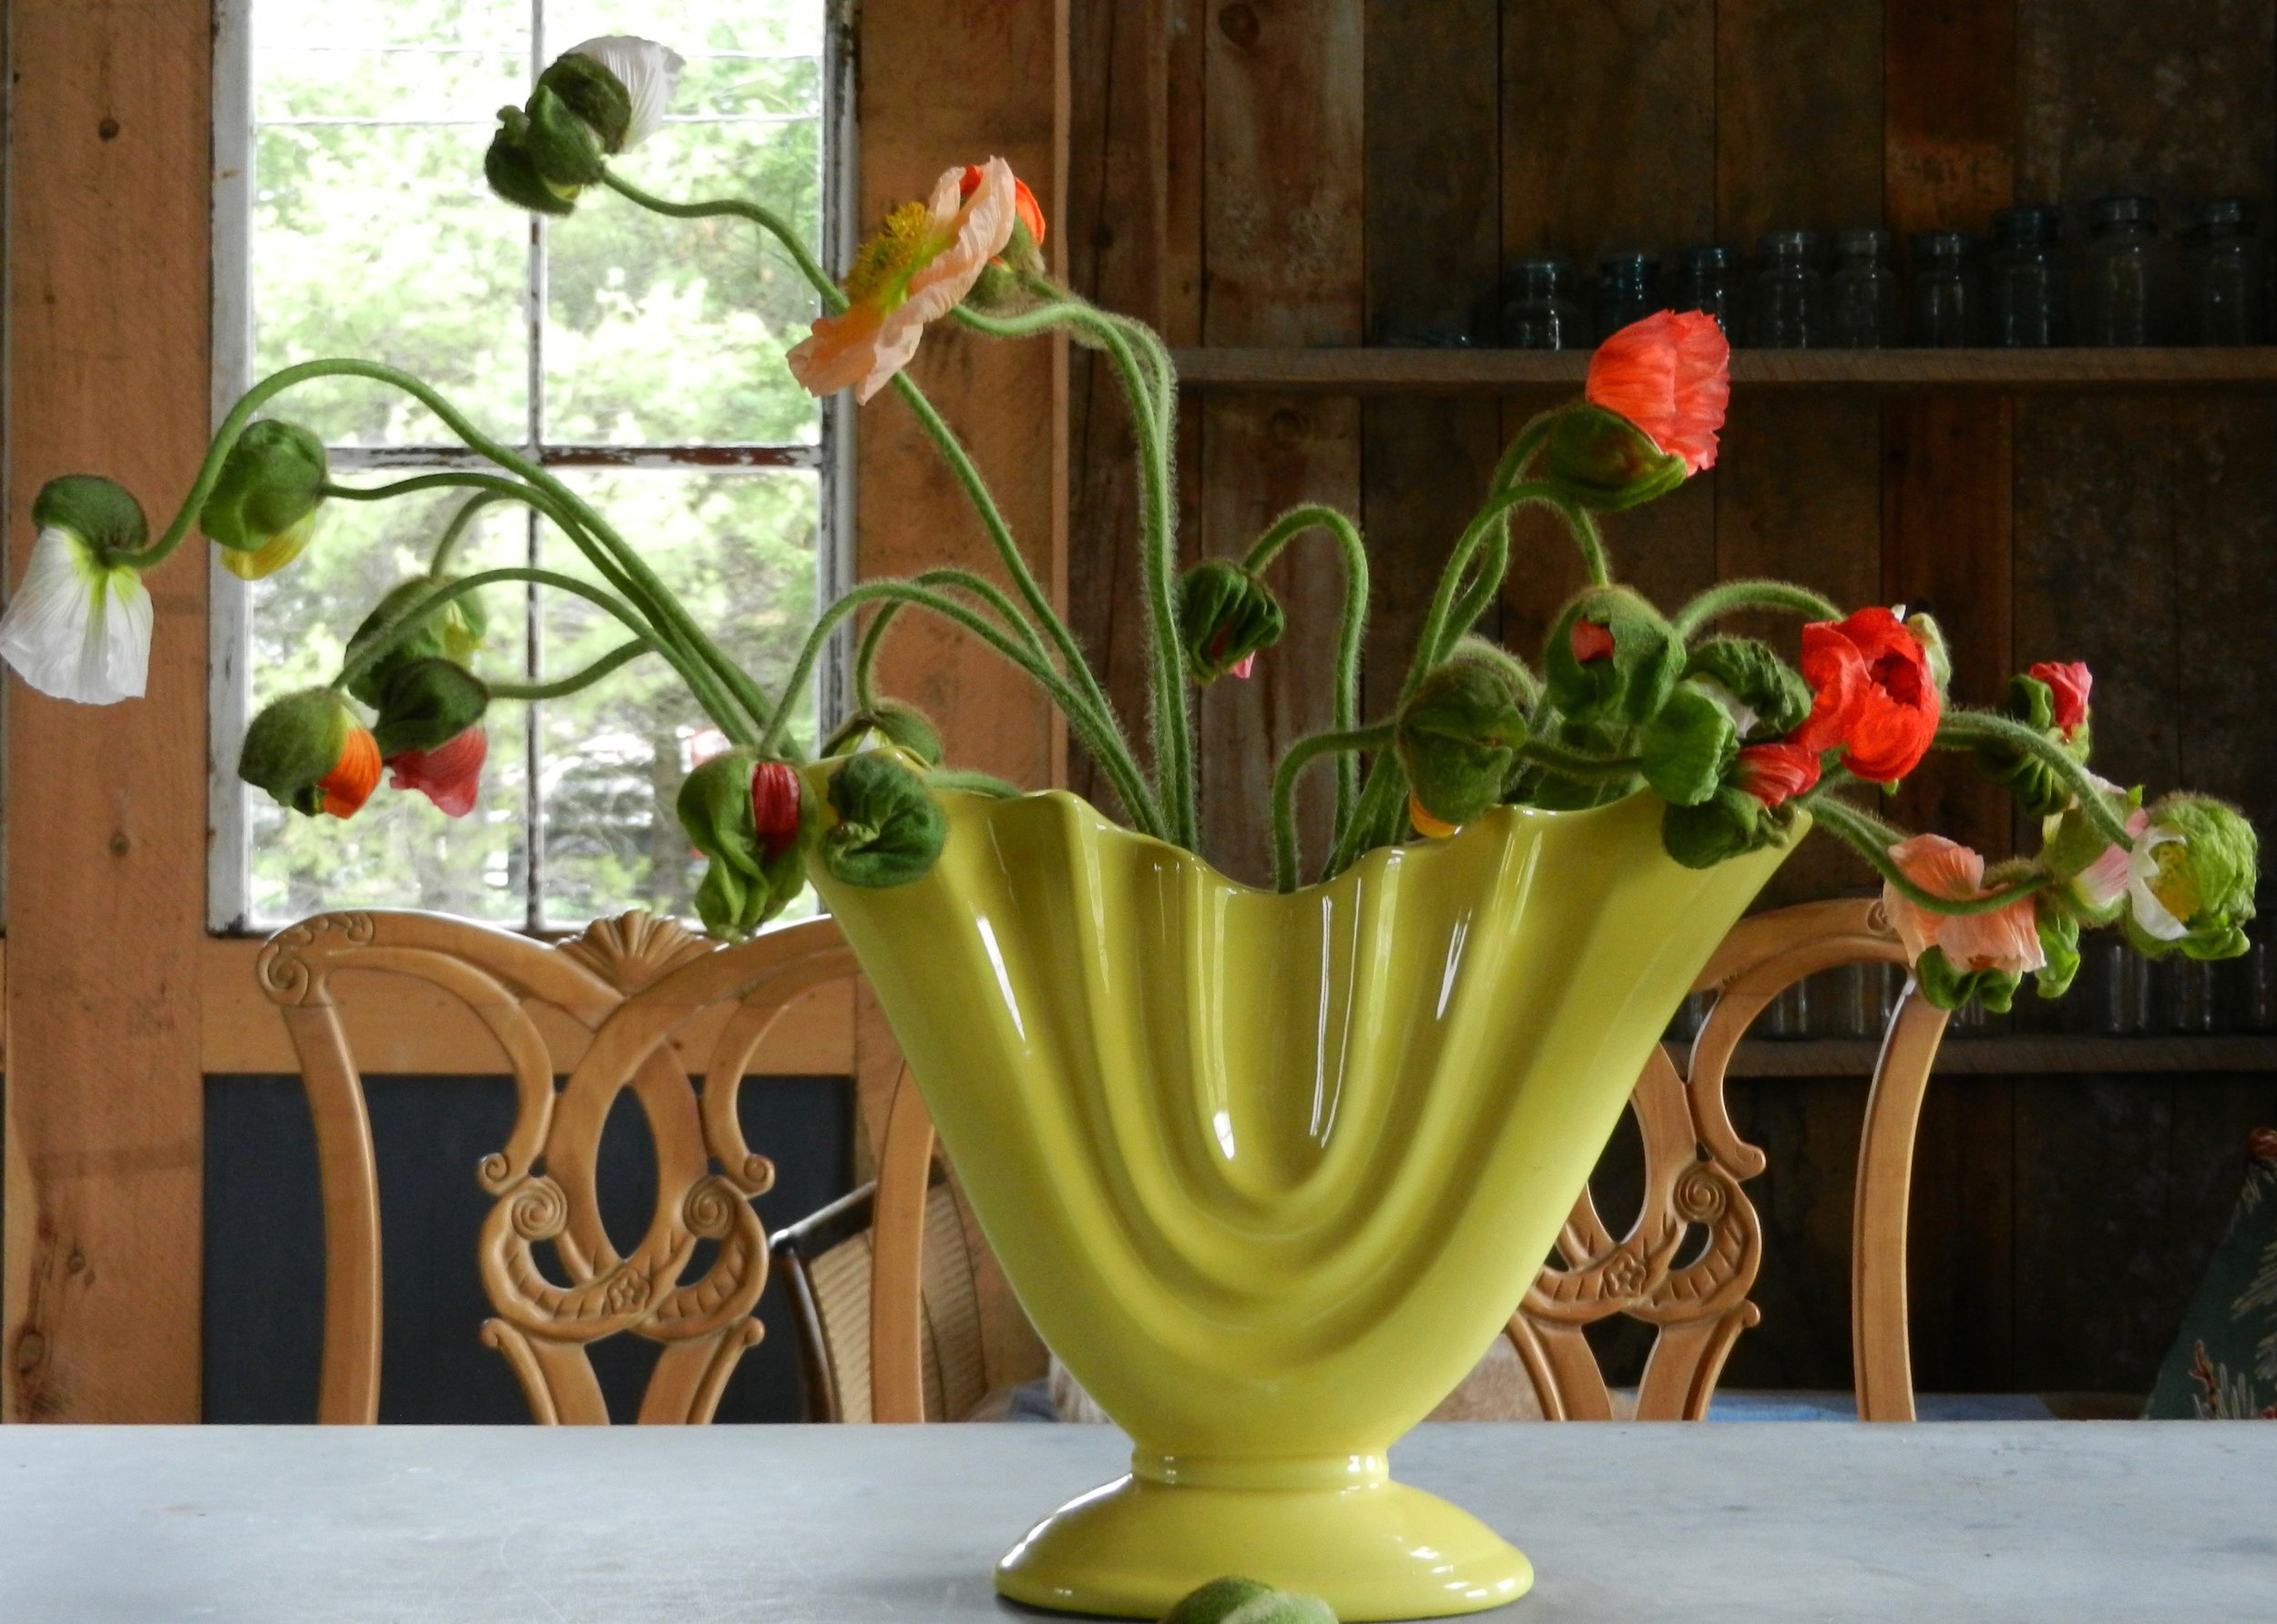 Locally grown Cut Flowers -